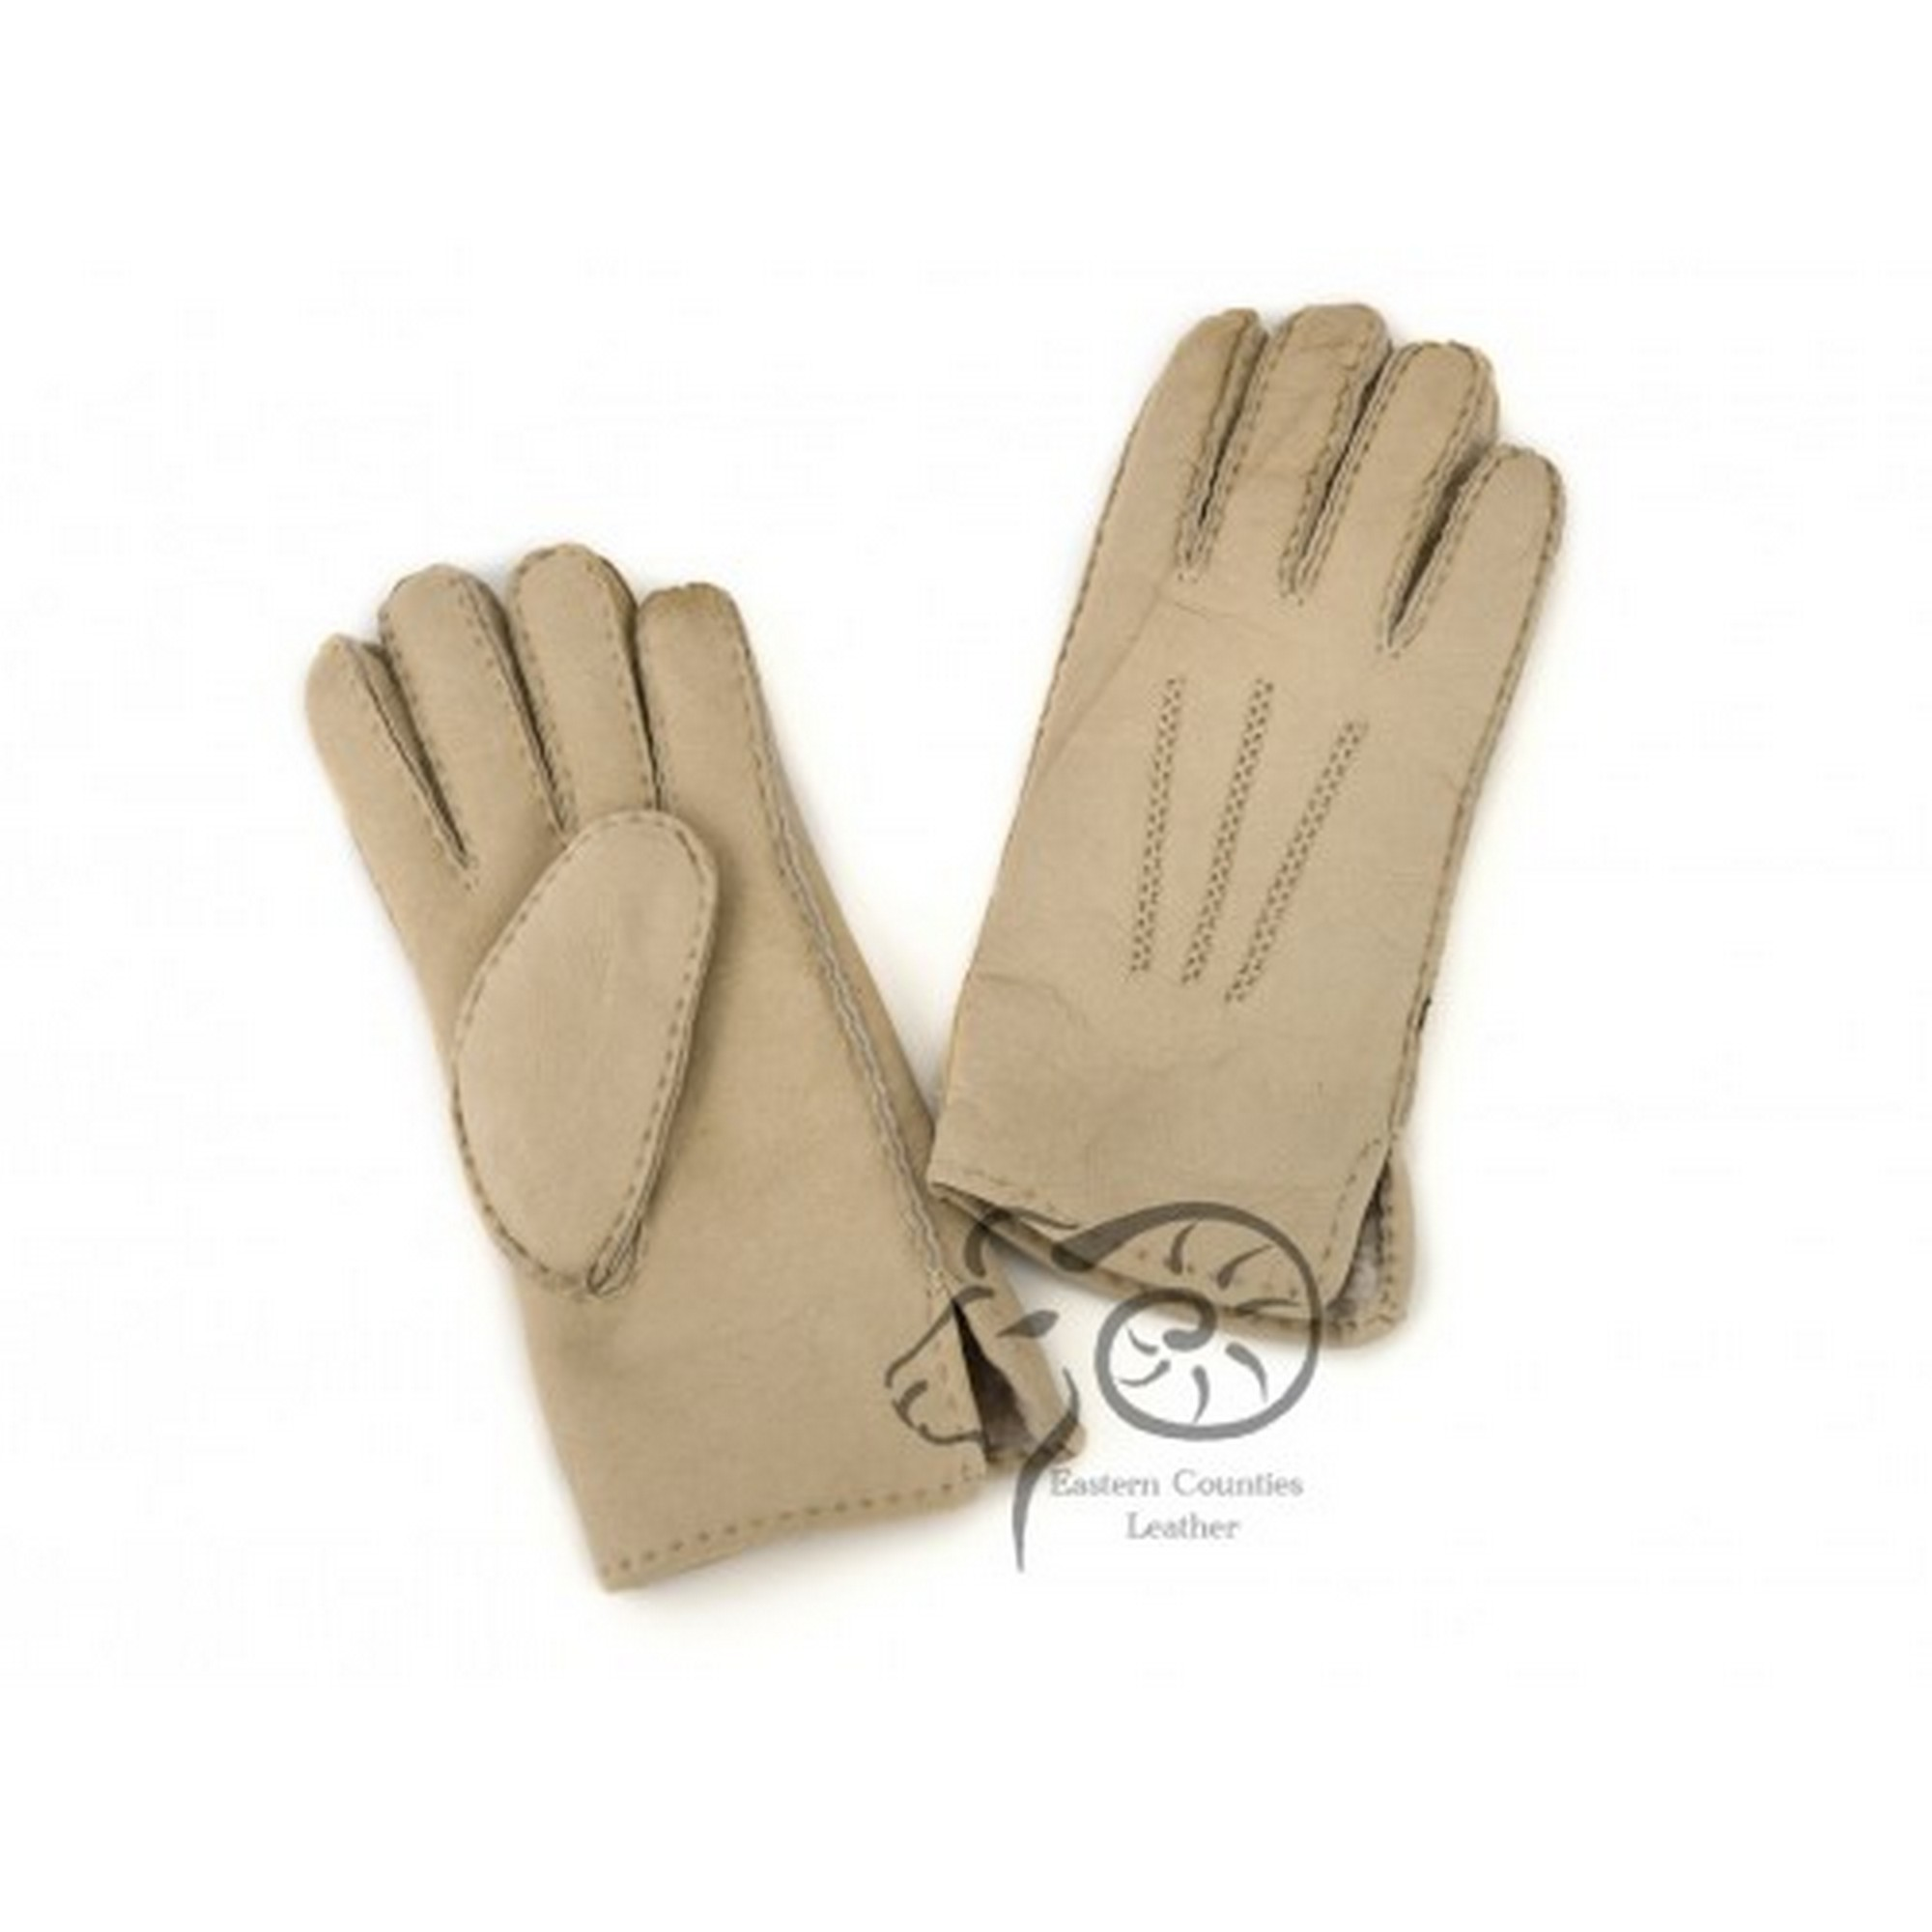 Eastern Counties Leather Womens/Ladies 3 Point Stitch Detail Sheepskin Gloves (XL) (Grey)